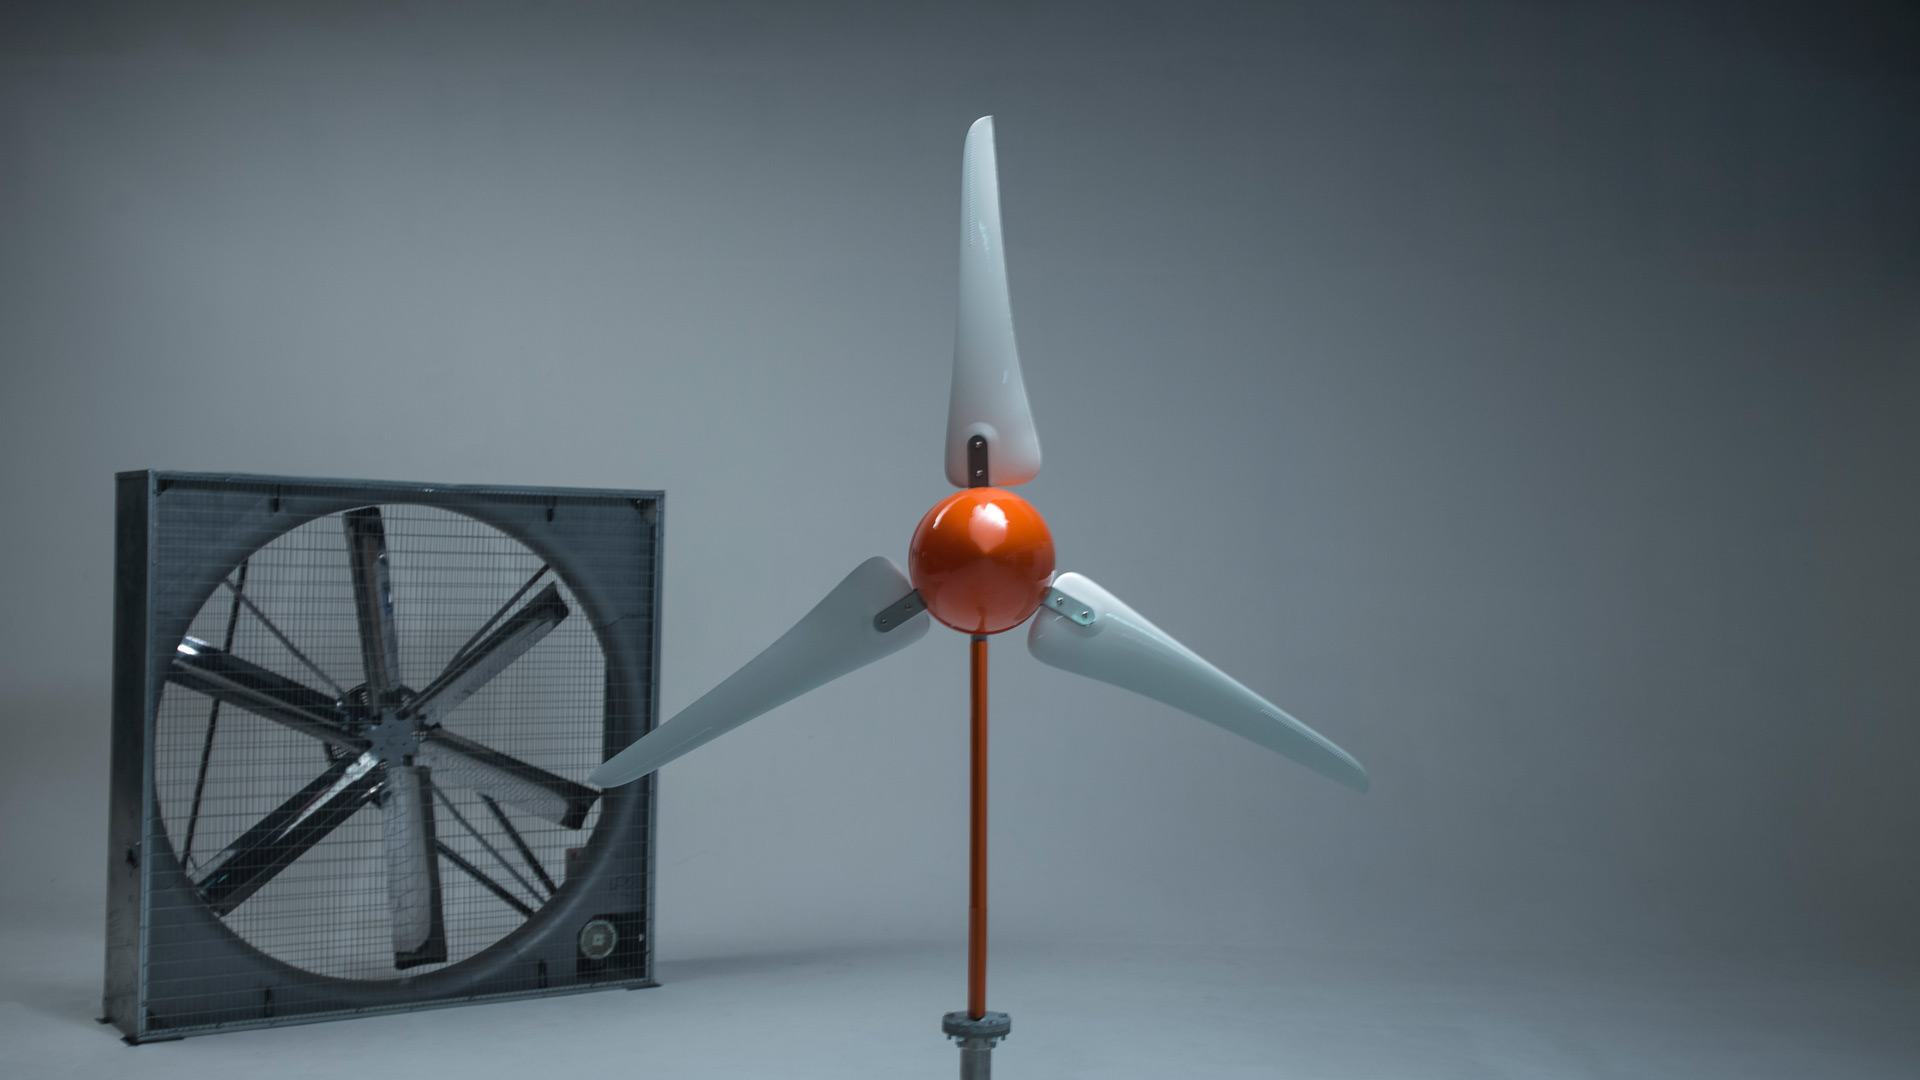 The Windleaf — A small powerful and reliable wind turbine